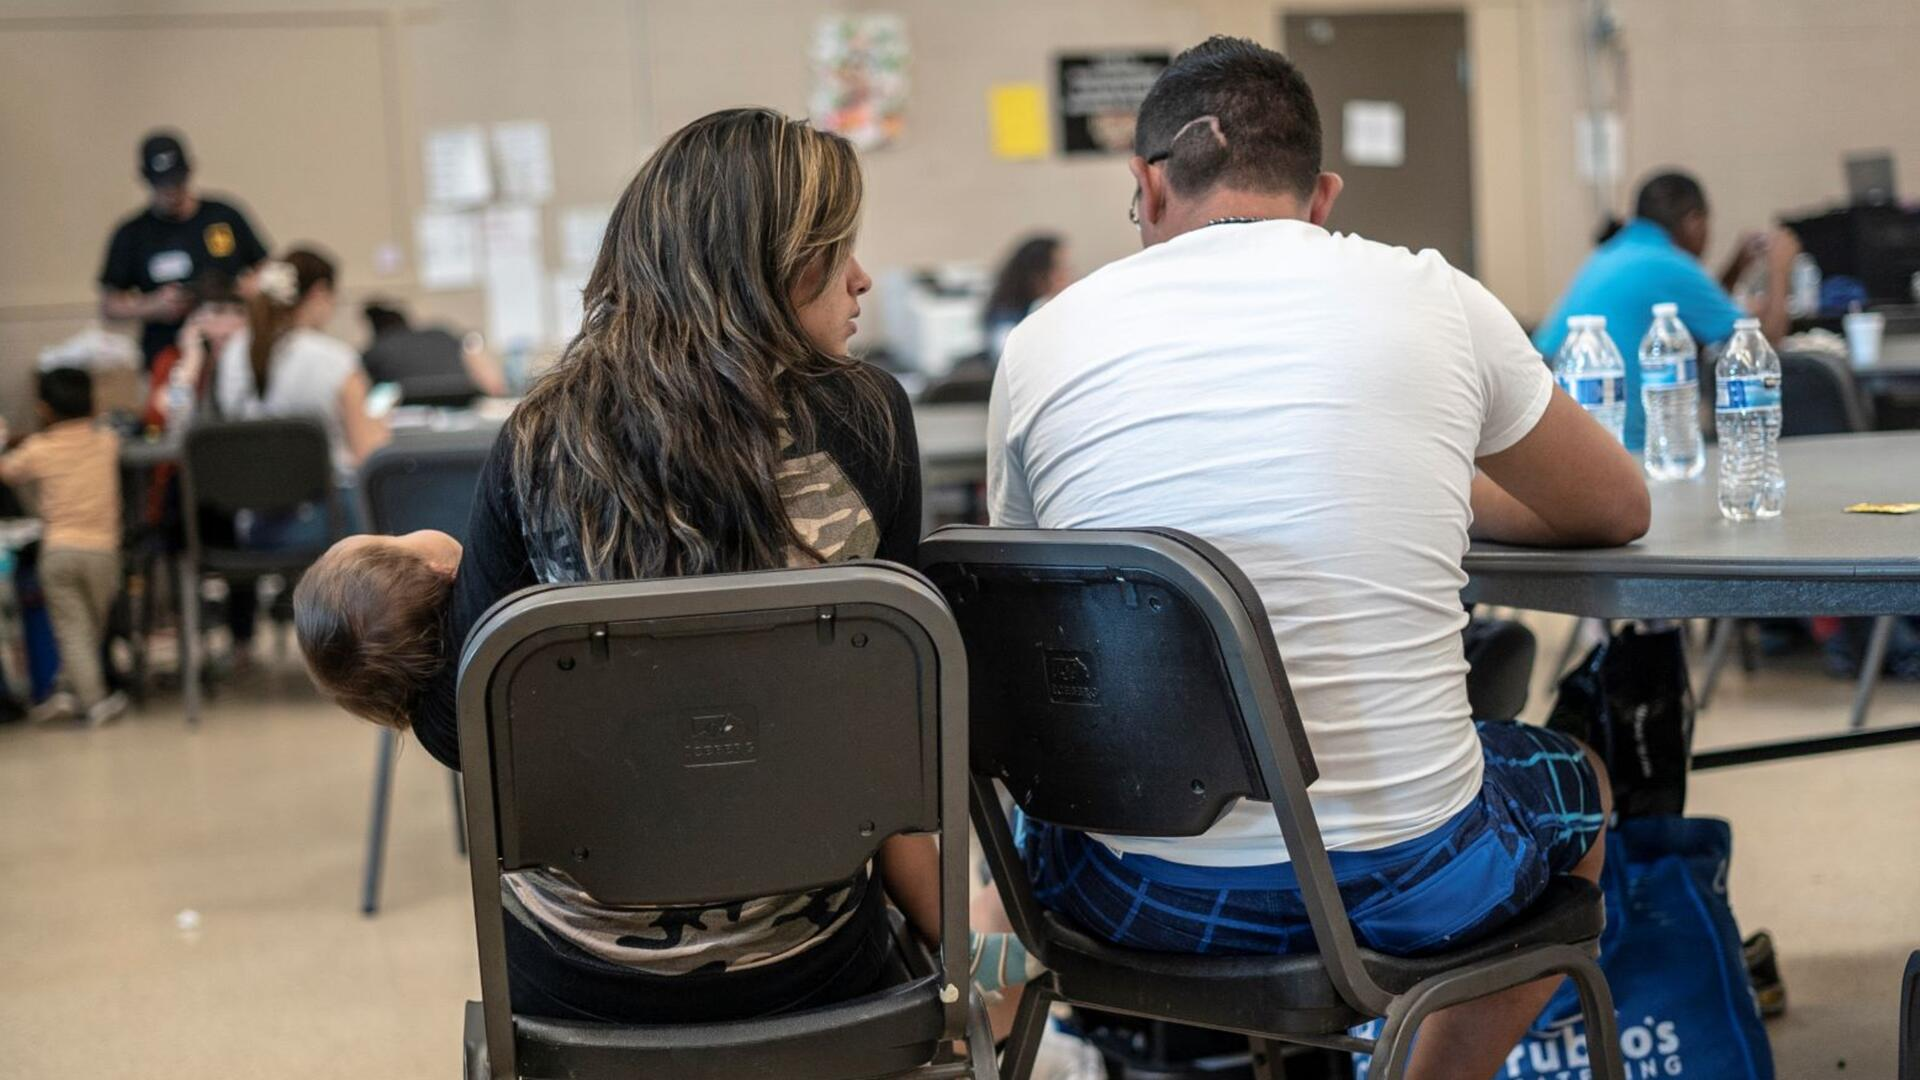 In the IRC's Welcome Center for asylum seekers, a husband and wife sit with their back to the camera as they discuss their journey as asylum seekers. The wife is holding their 2-year-old daughter.